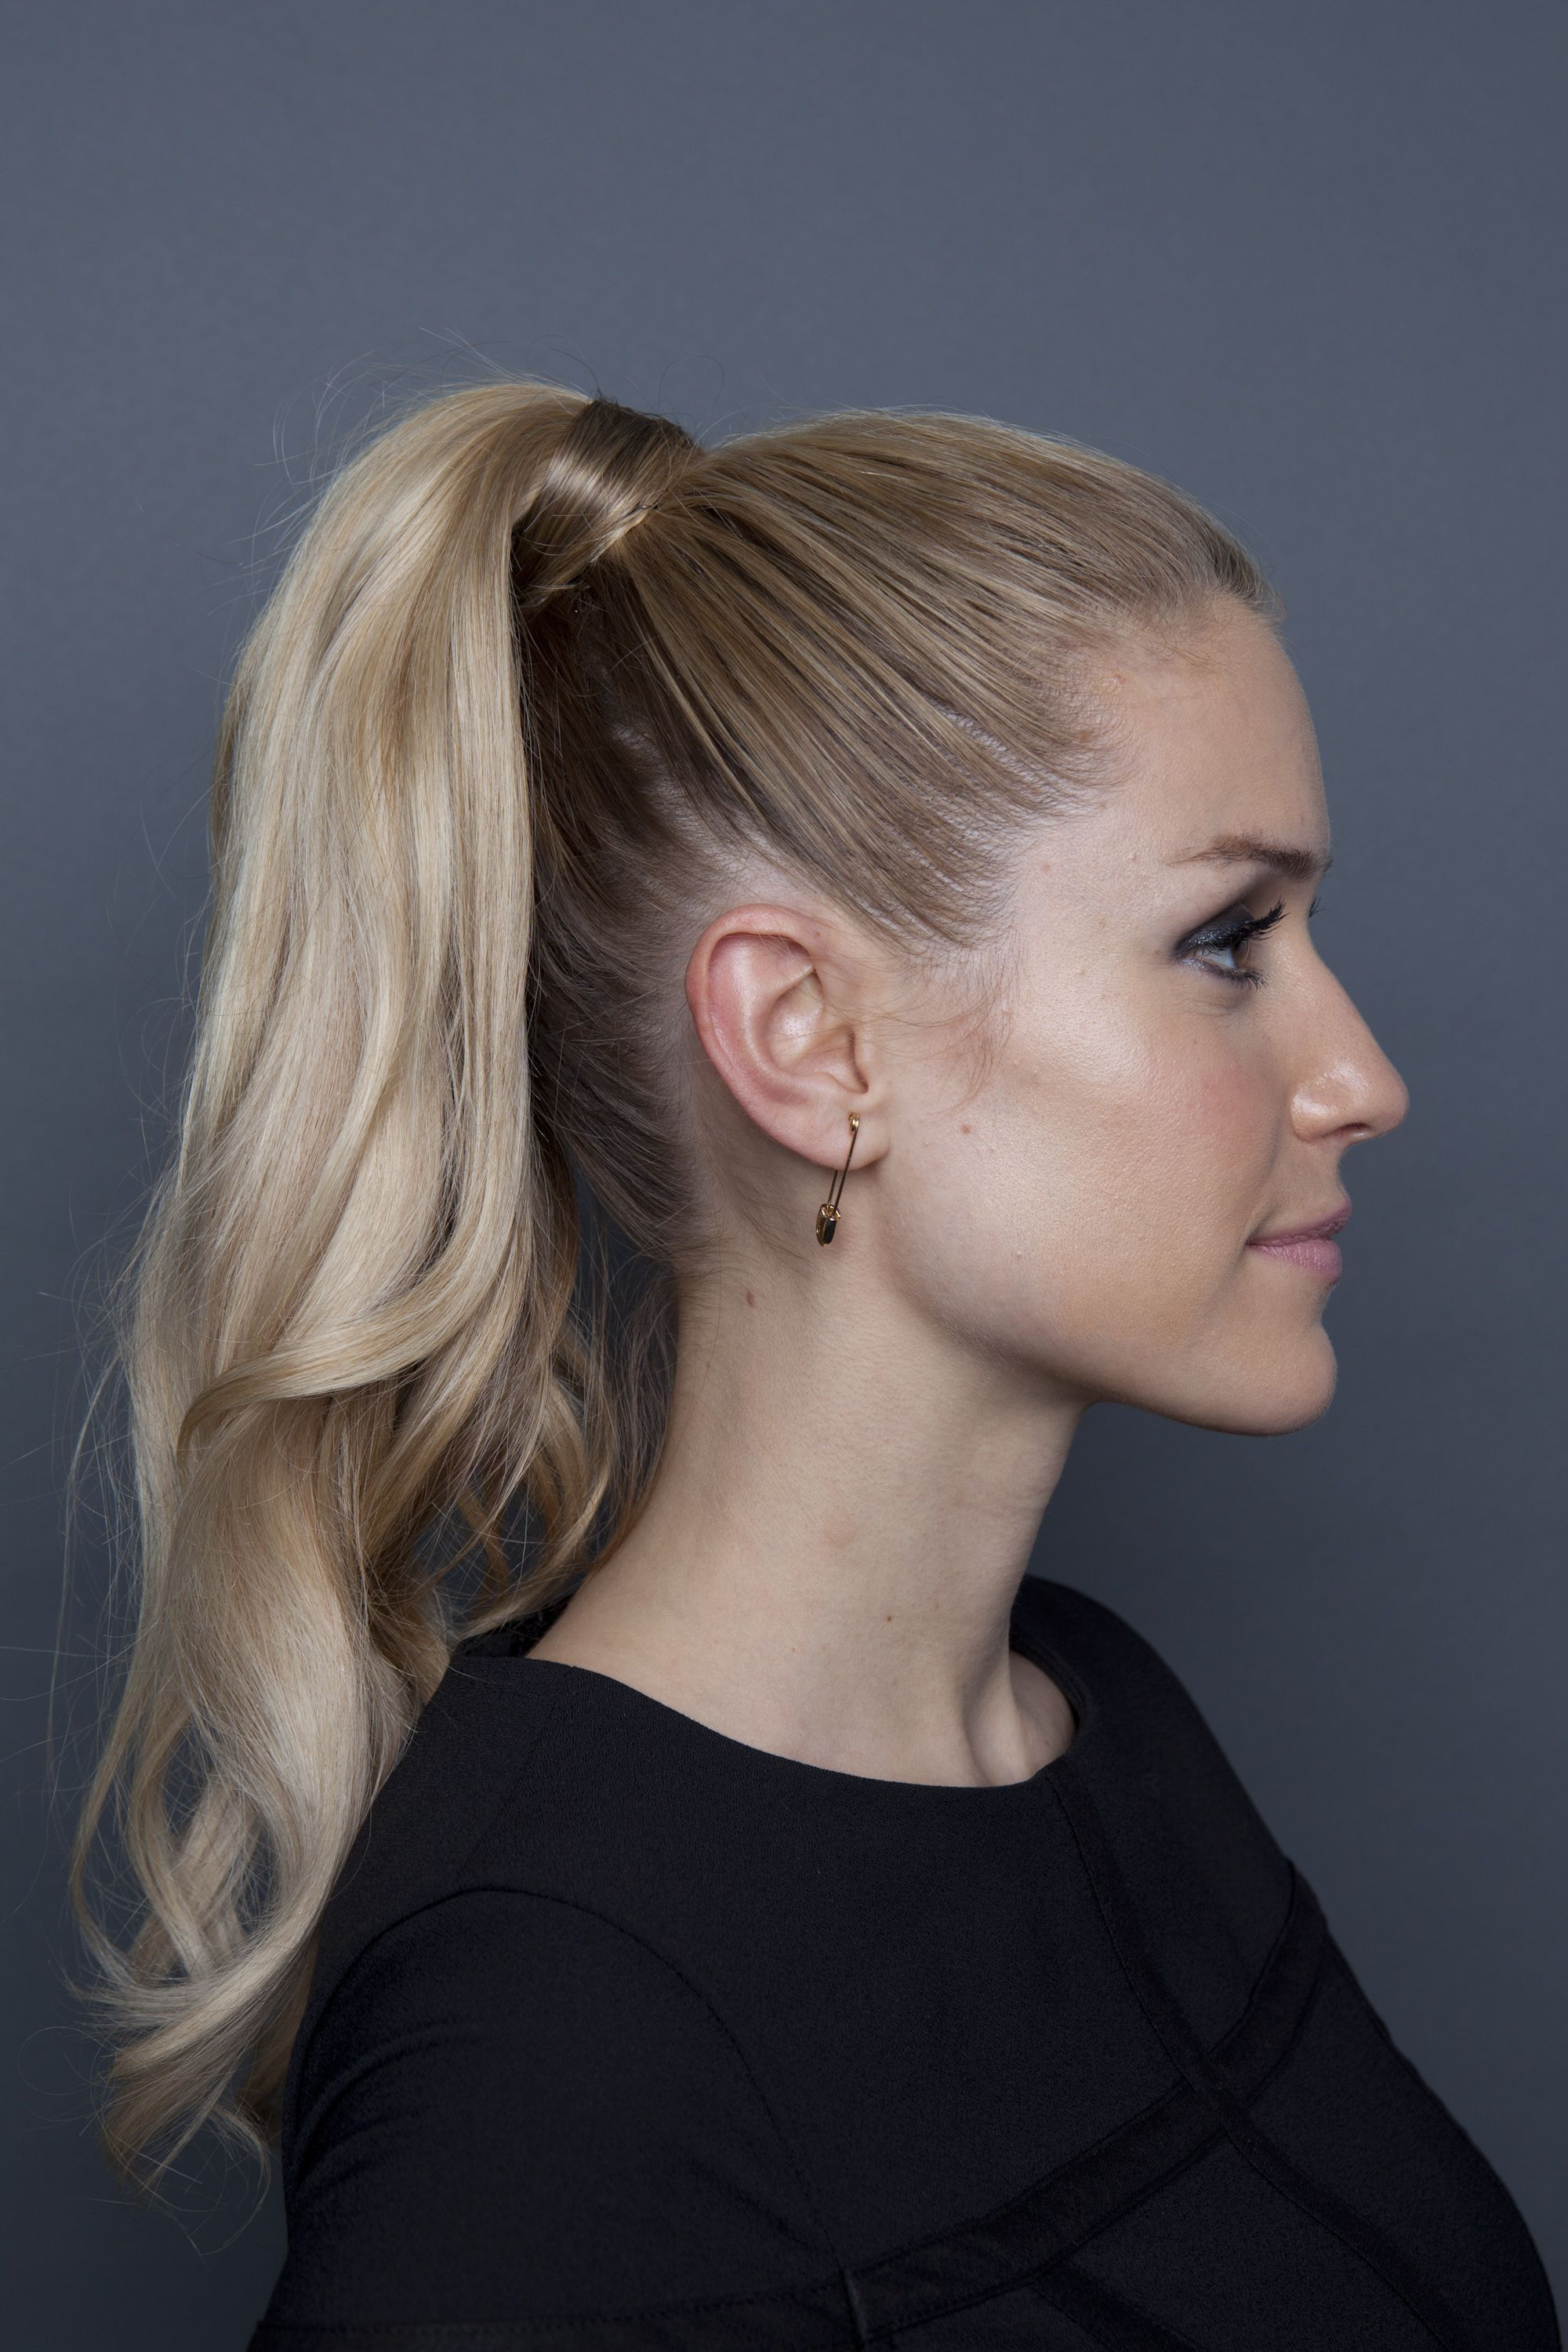 Fashionable High Looped Ponytail Hairstyles With Hair Wrap With Regard To Kristin Cavallari Ponytail (View 8 of 20)